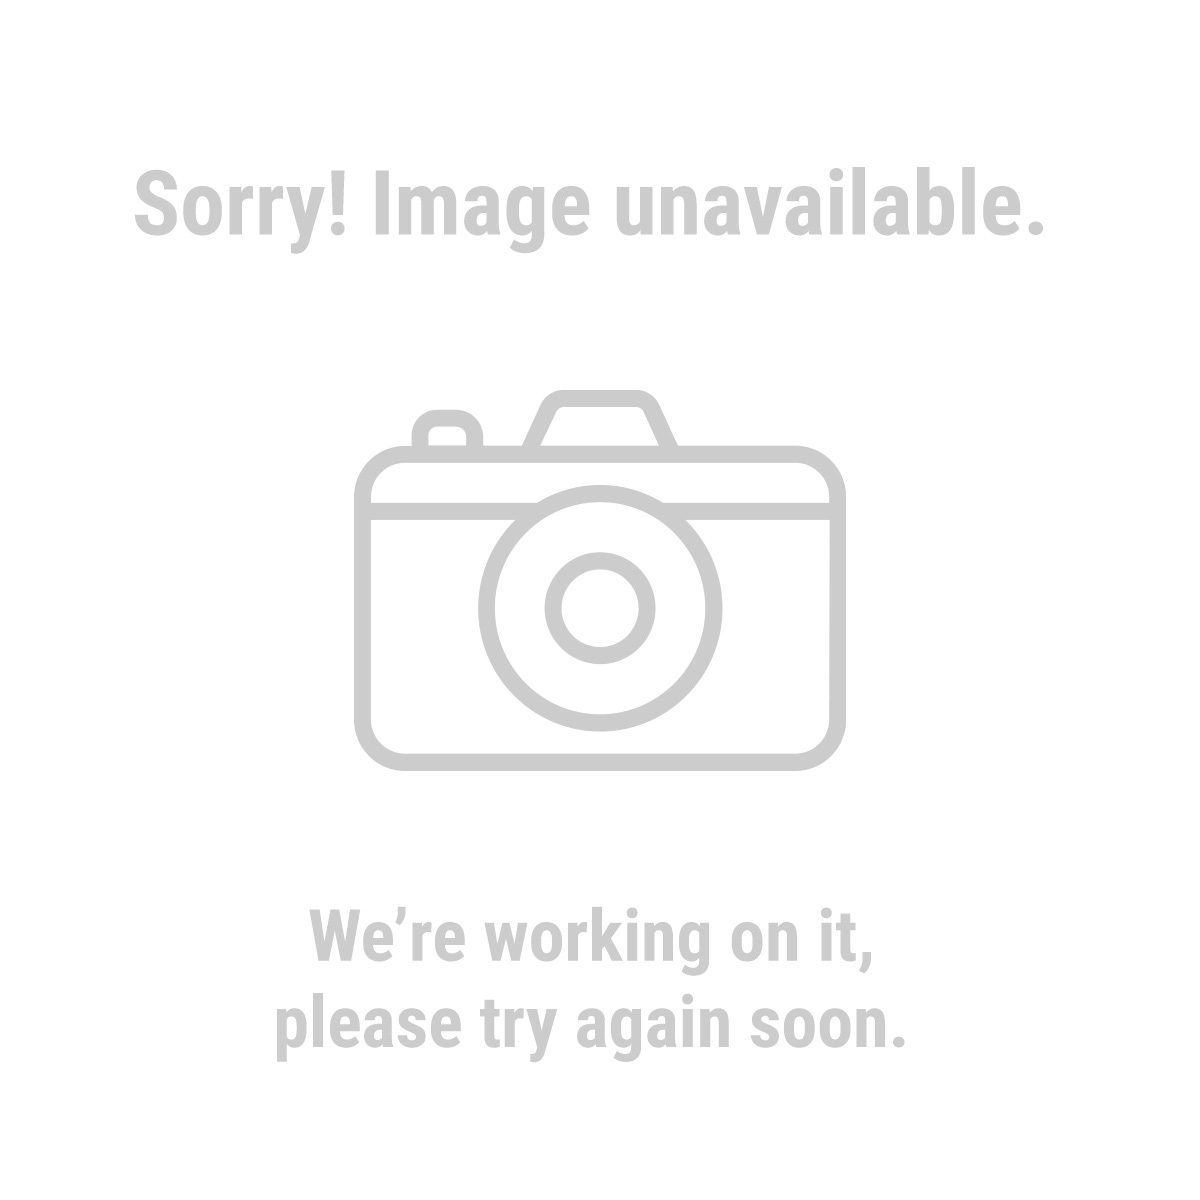 Haul-Master® 62388 10 in. Pneumatic Tire  with White Hub